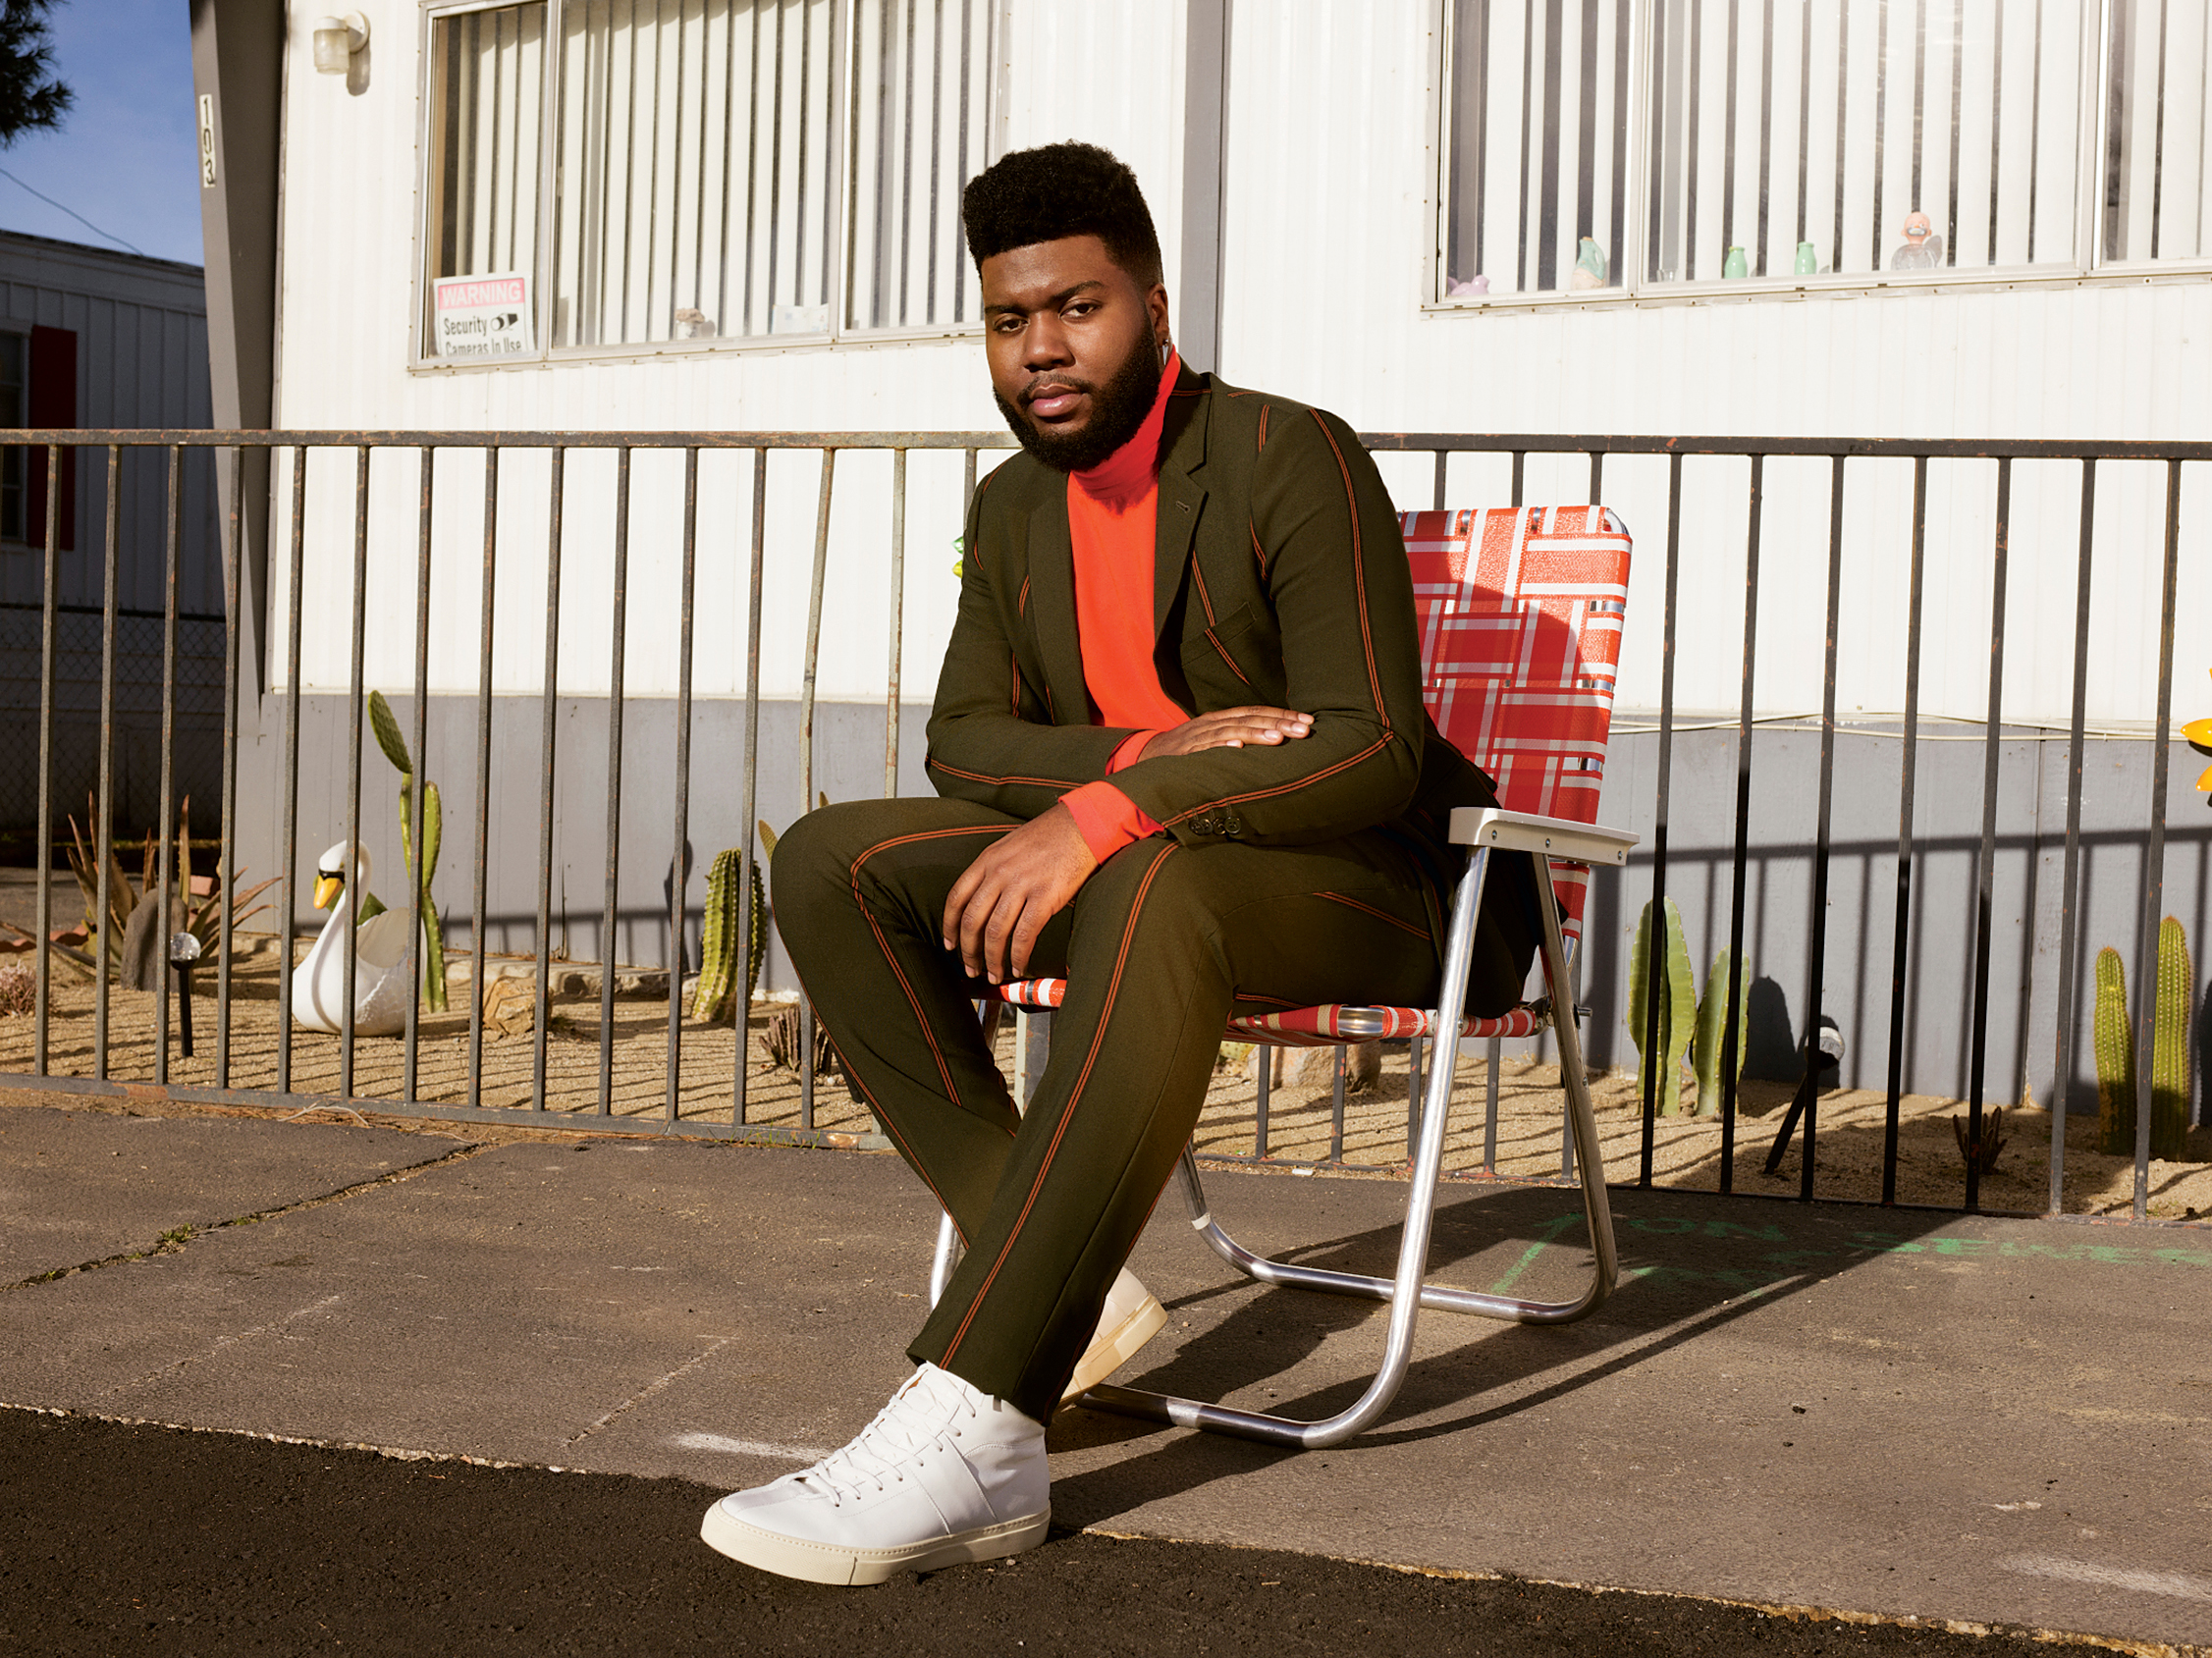 Singer Khalid. Photograph by Grace Pickering.